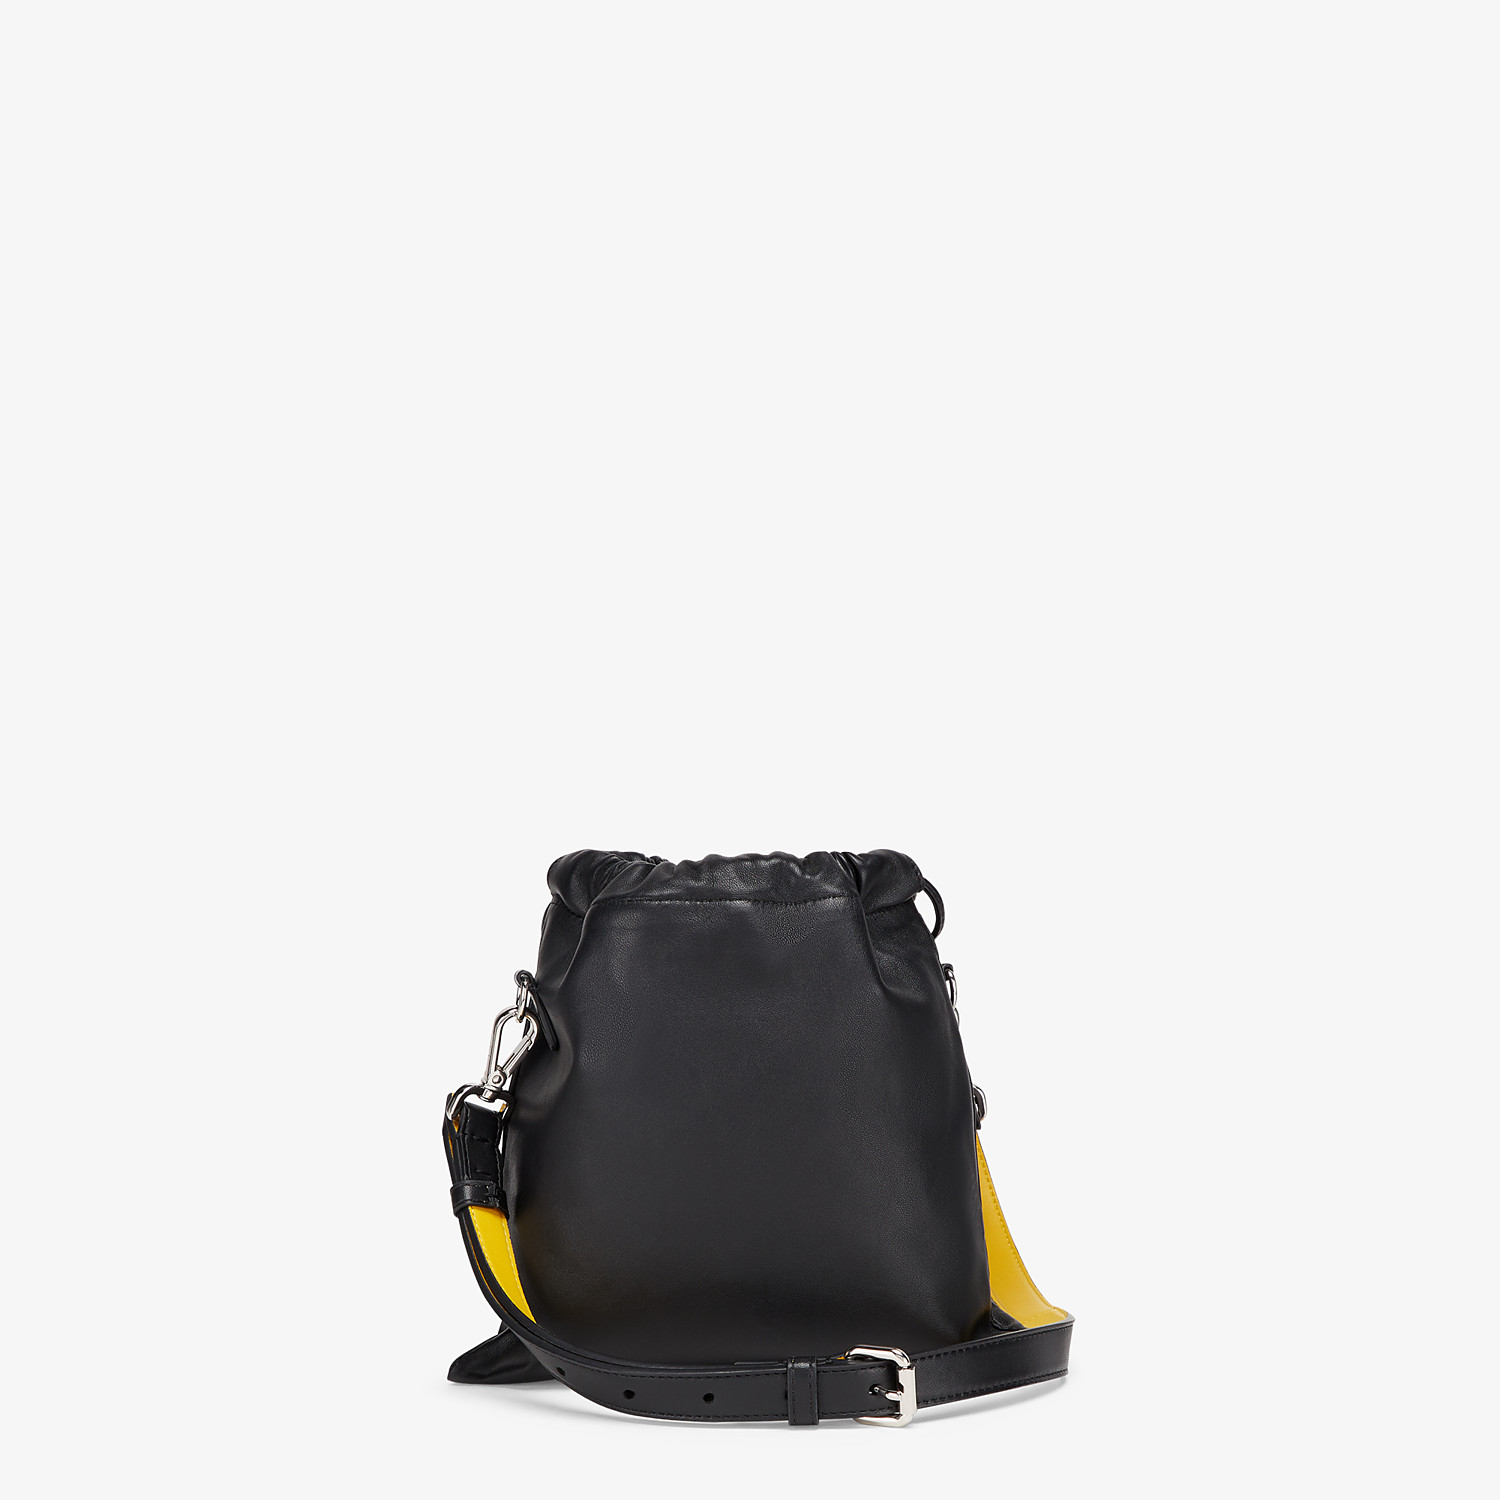 FENDI FENDI PACK SMALL POUCH - Black nappa leather bag - view 3 detail